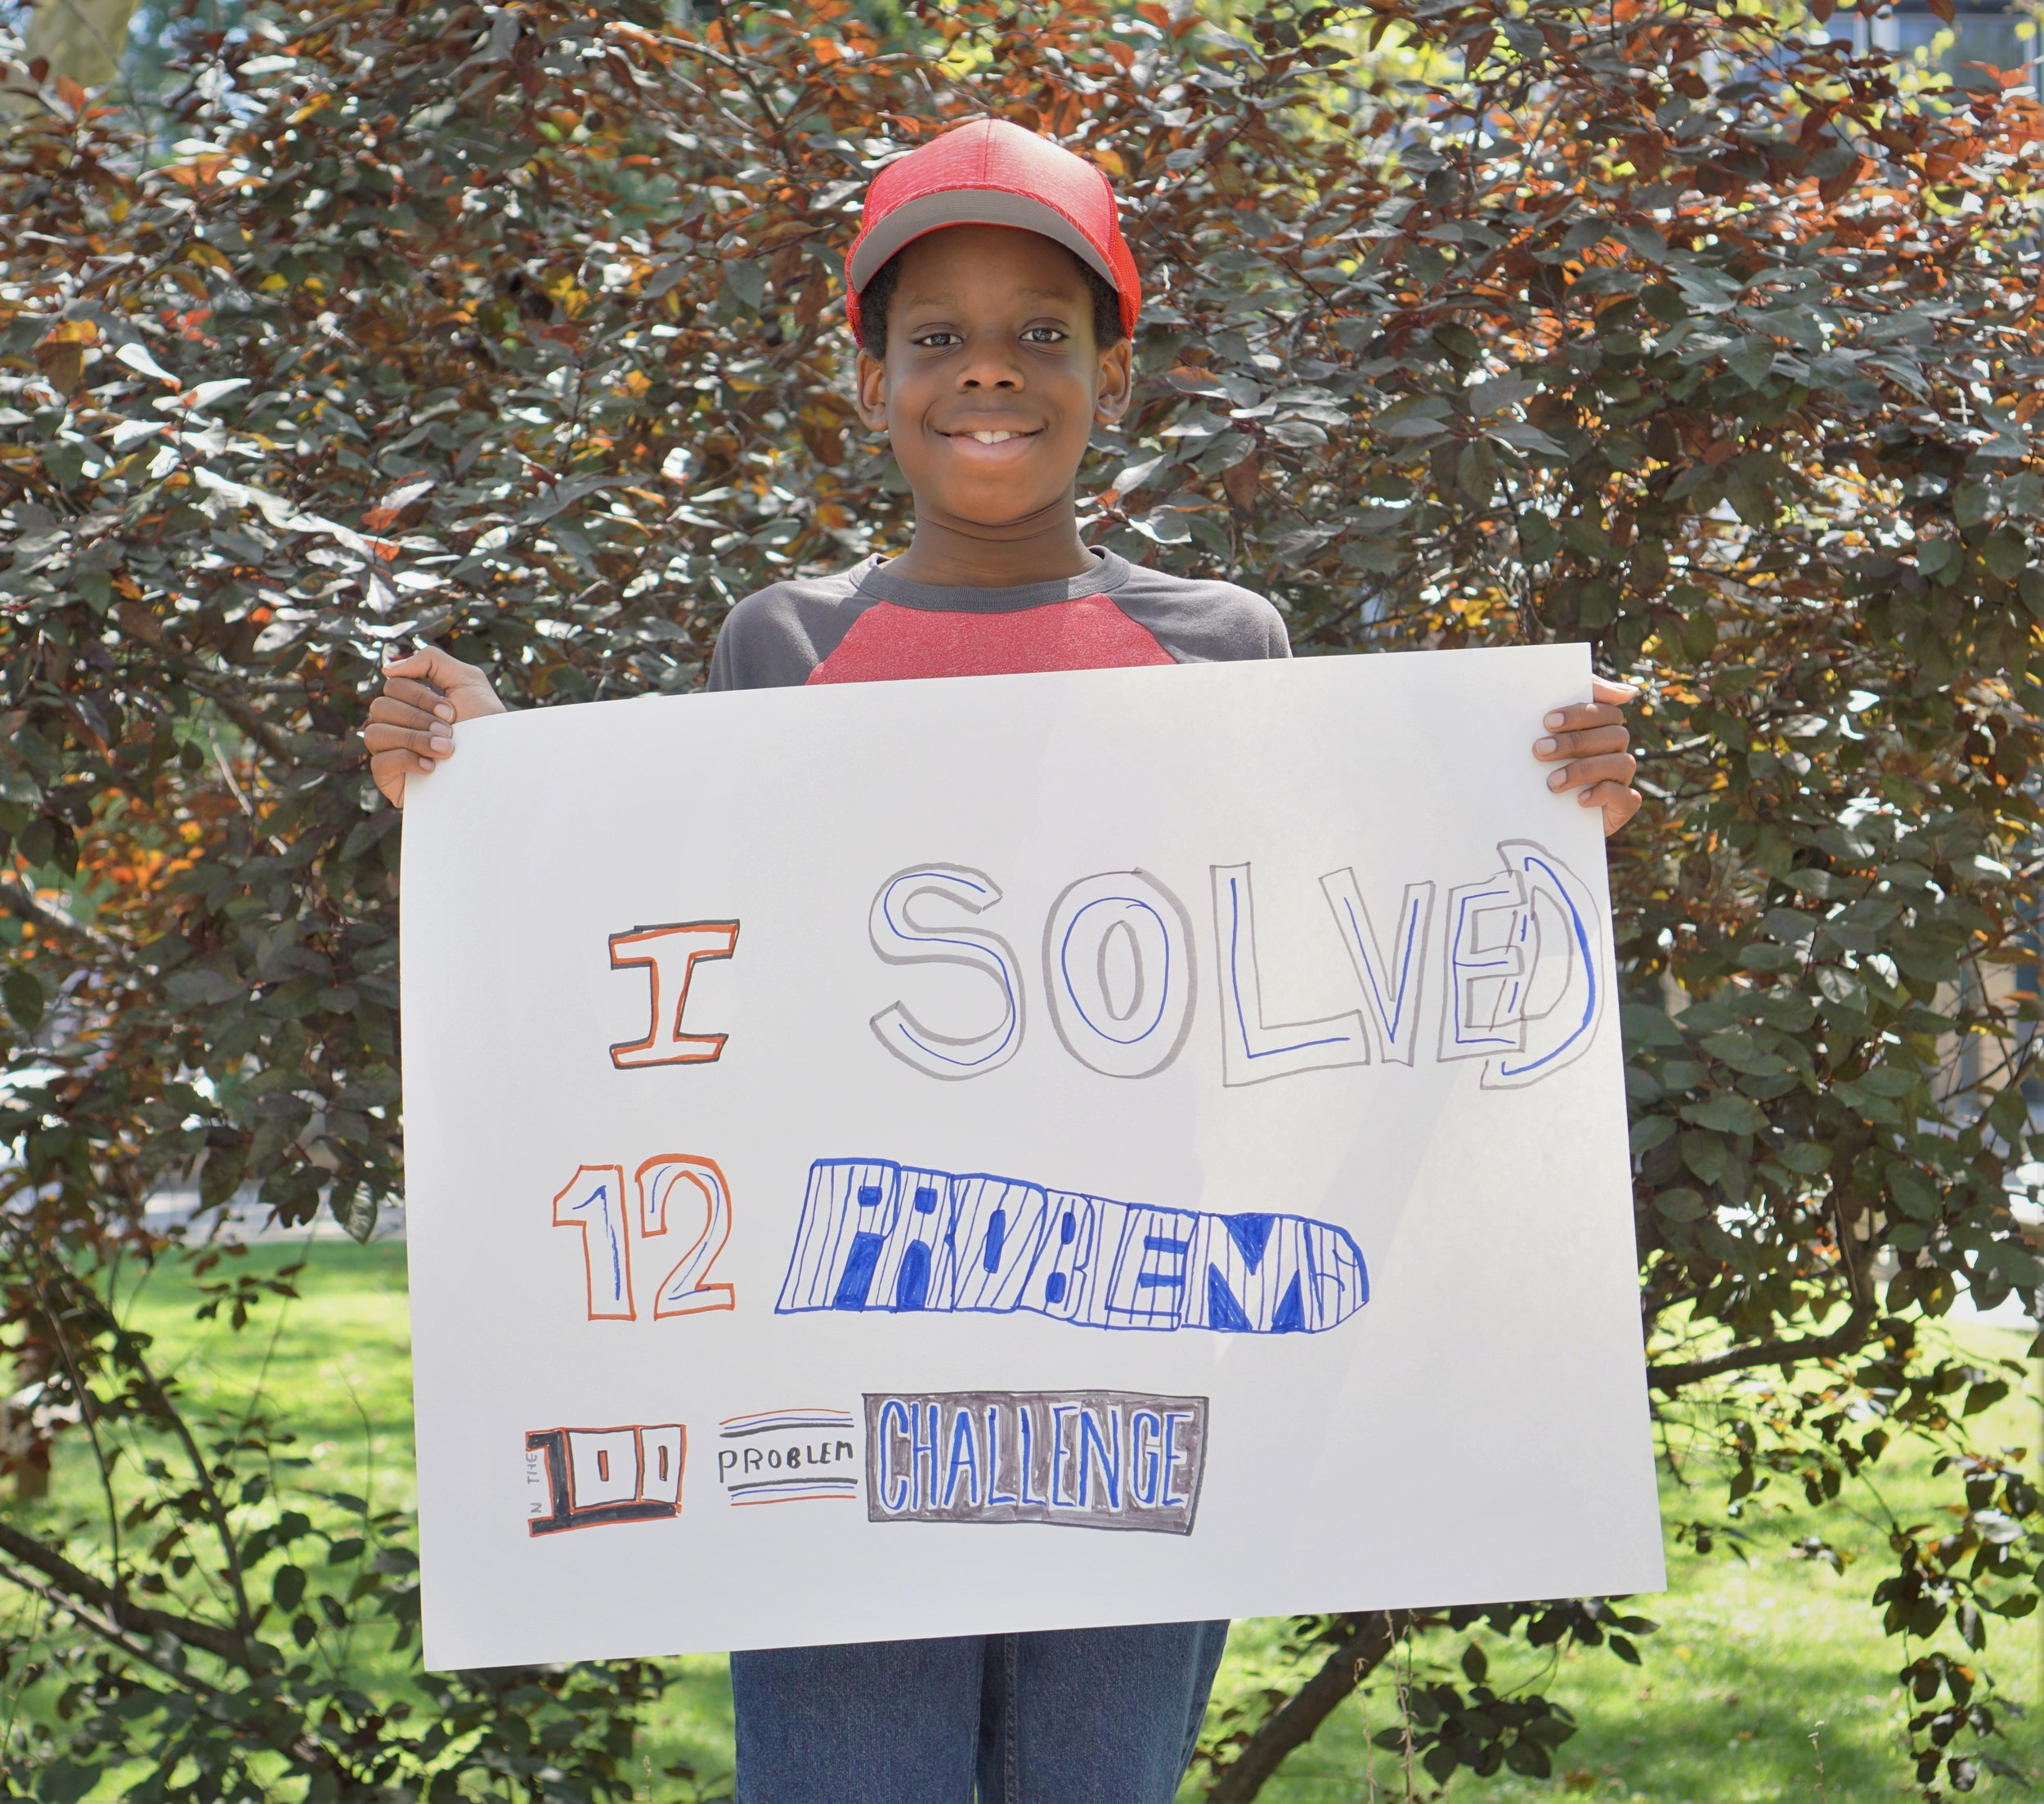 """I solved 12 problems in the 100 Problem Challenge."" — Vernon, BEAM Discovery"